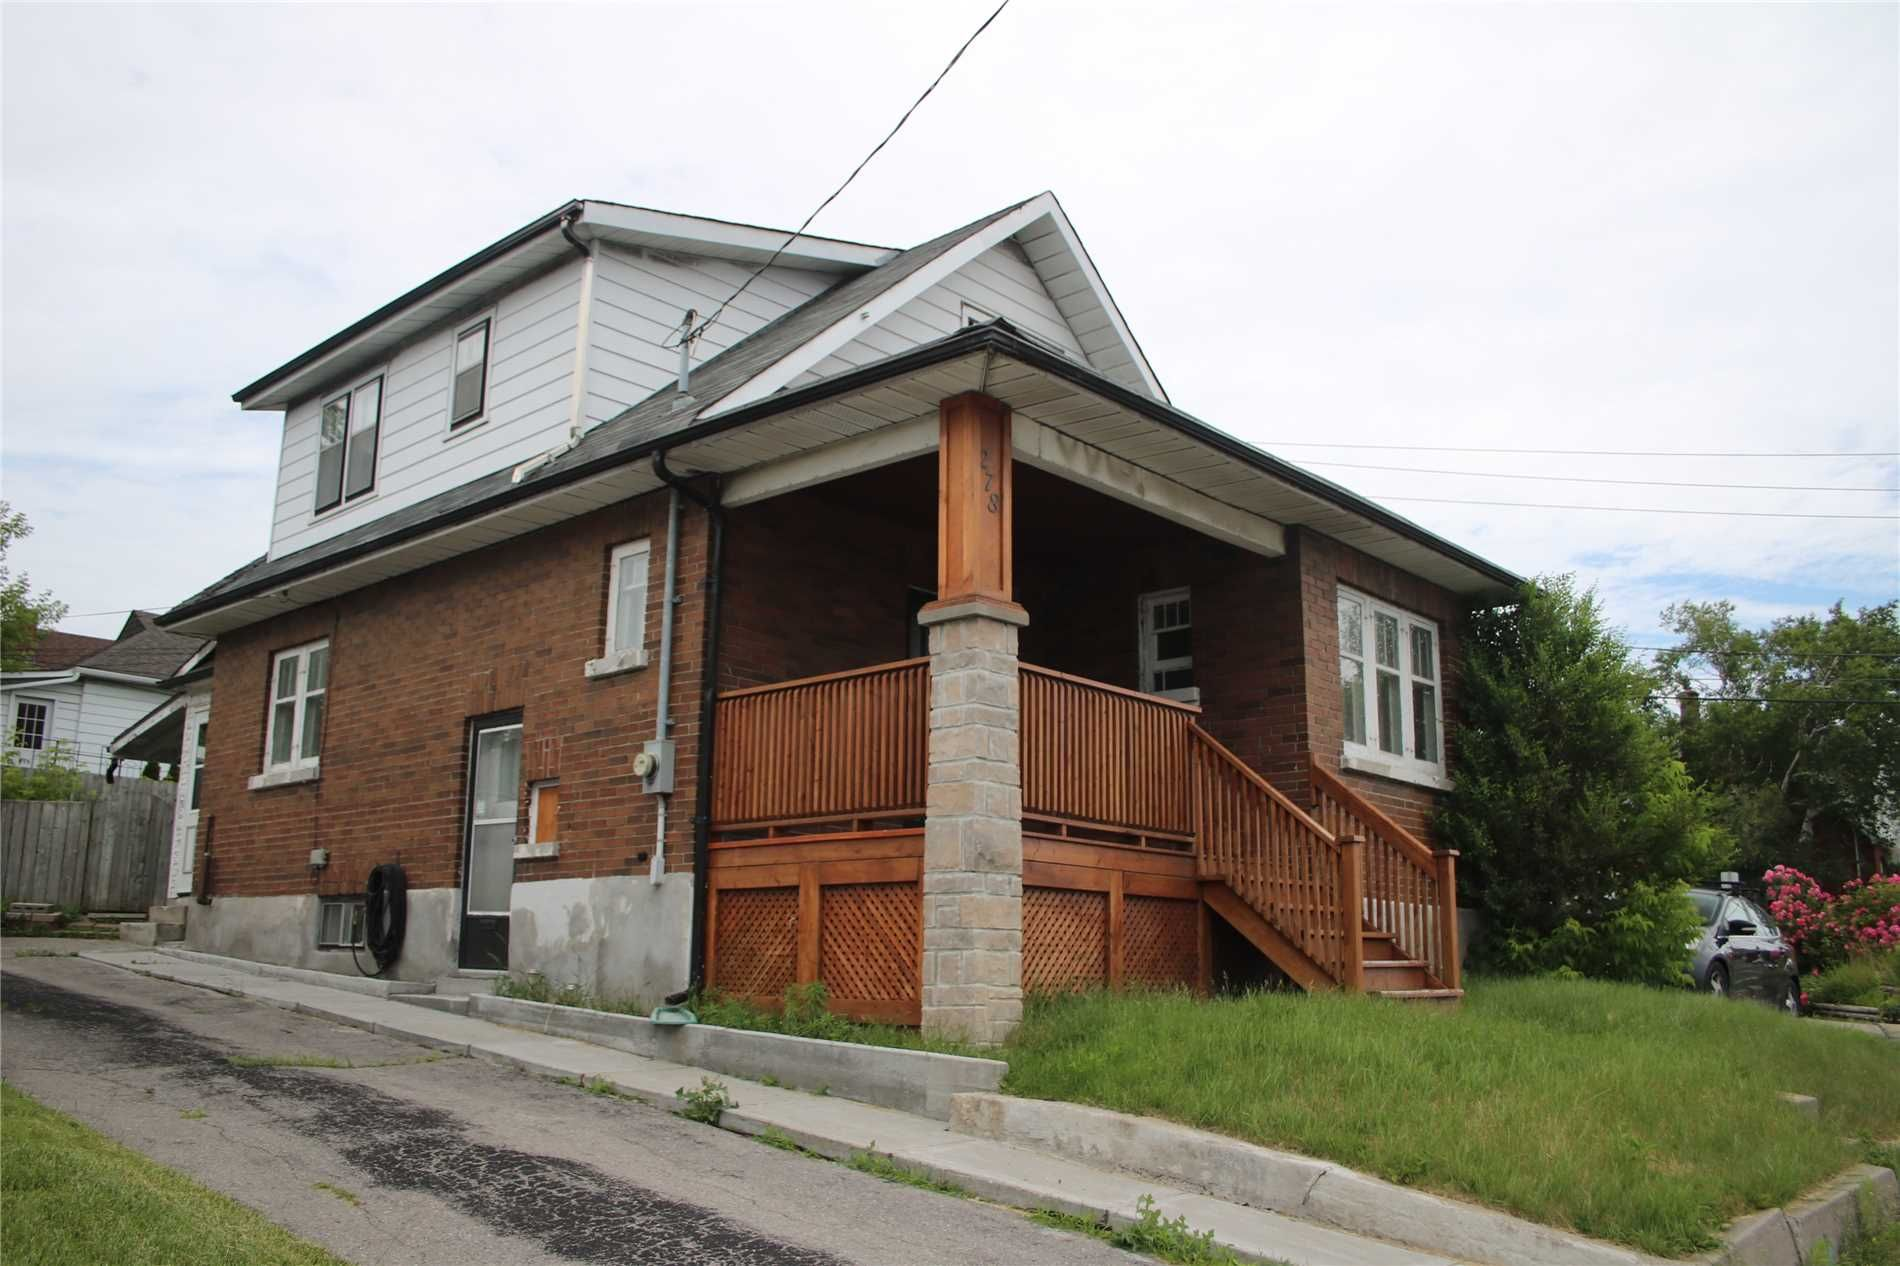 Main Photo: 278 W Bloor Street in Oshawa: Lakeview House (1 1/2 Storey) for sale : MLS®# E4506412